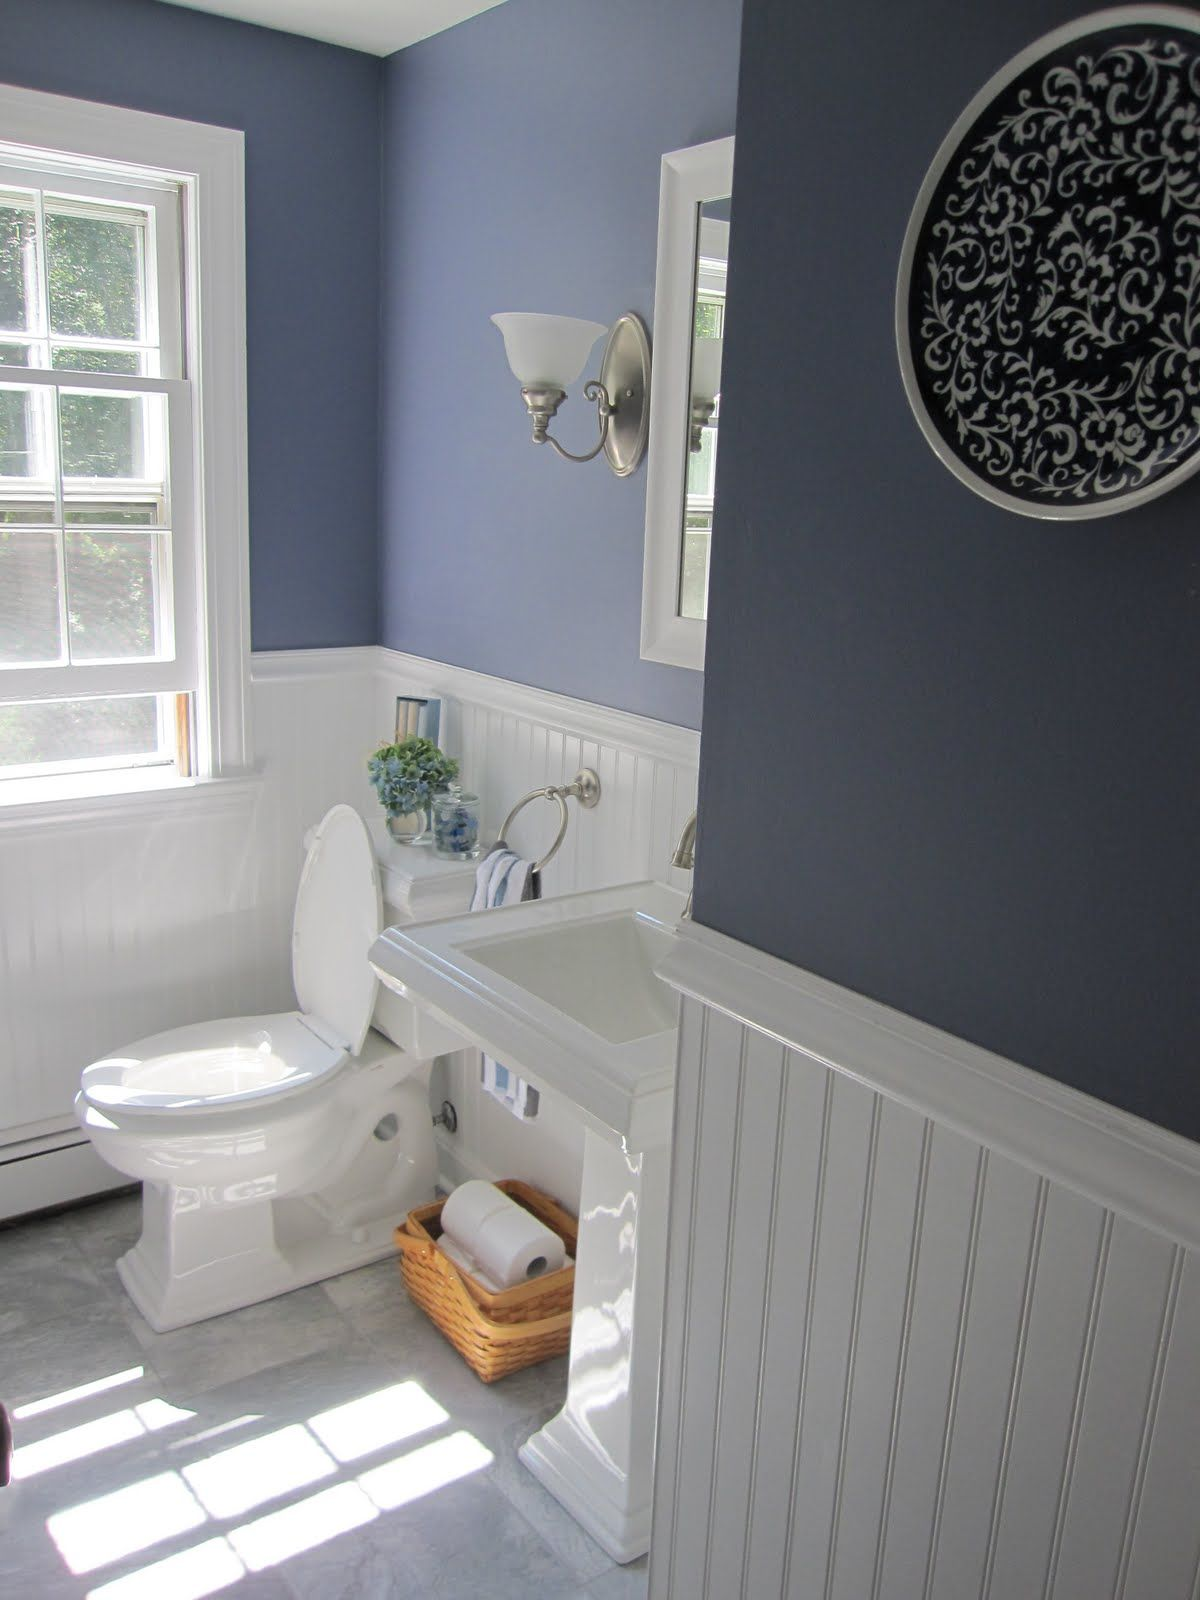 25 Stylish Wainscoting Ideas Color blue Bath and Half bath remodel